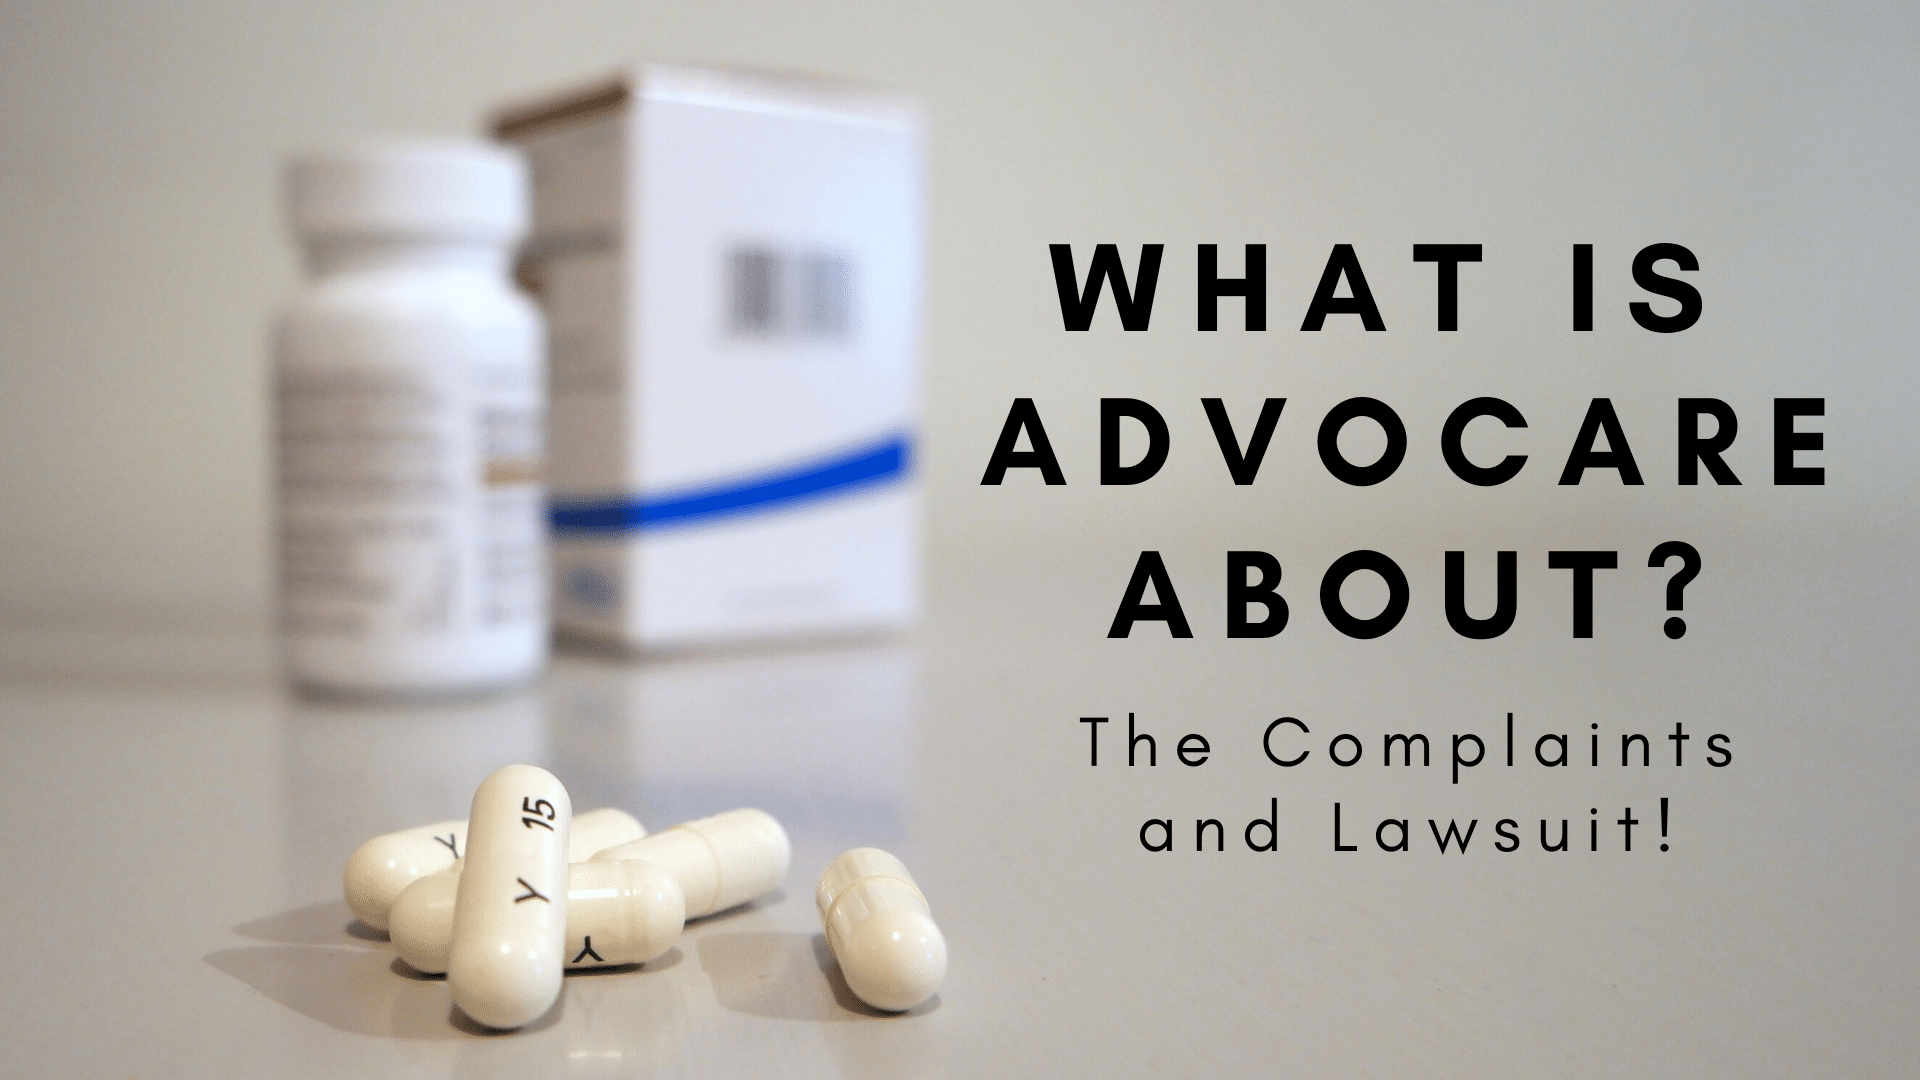 Pill bottle and box with capsules spilled out and the words What is advocare about? The complaints and lawsuit!